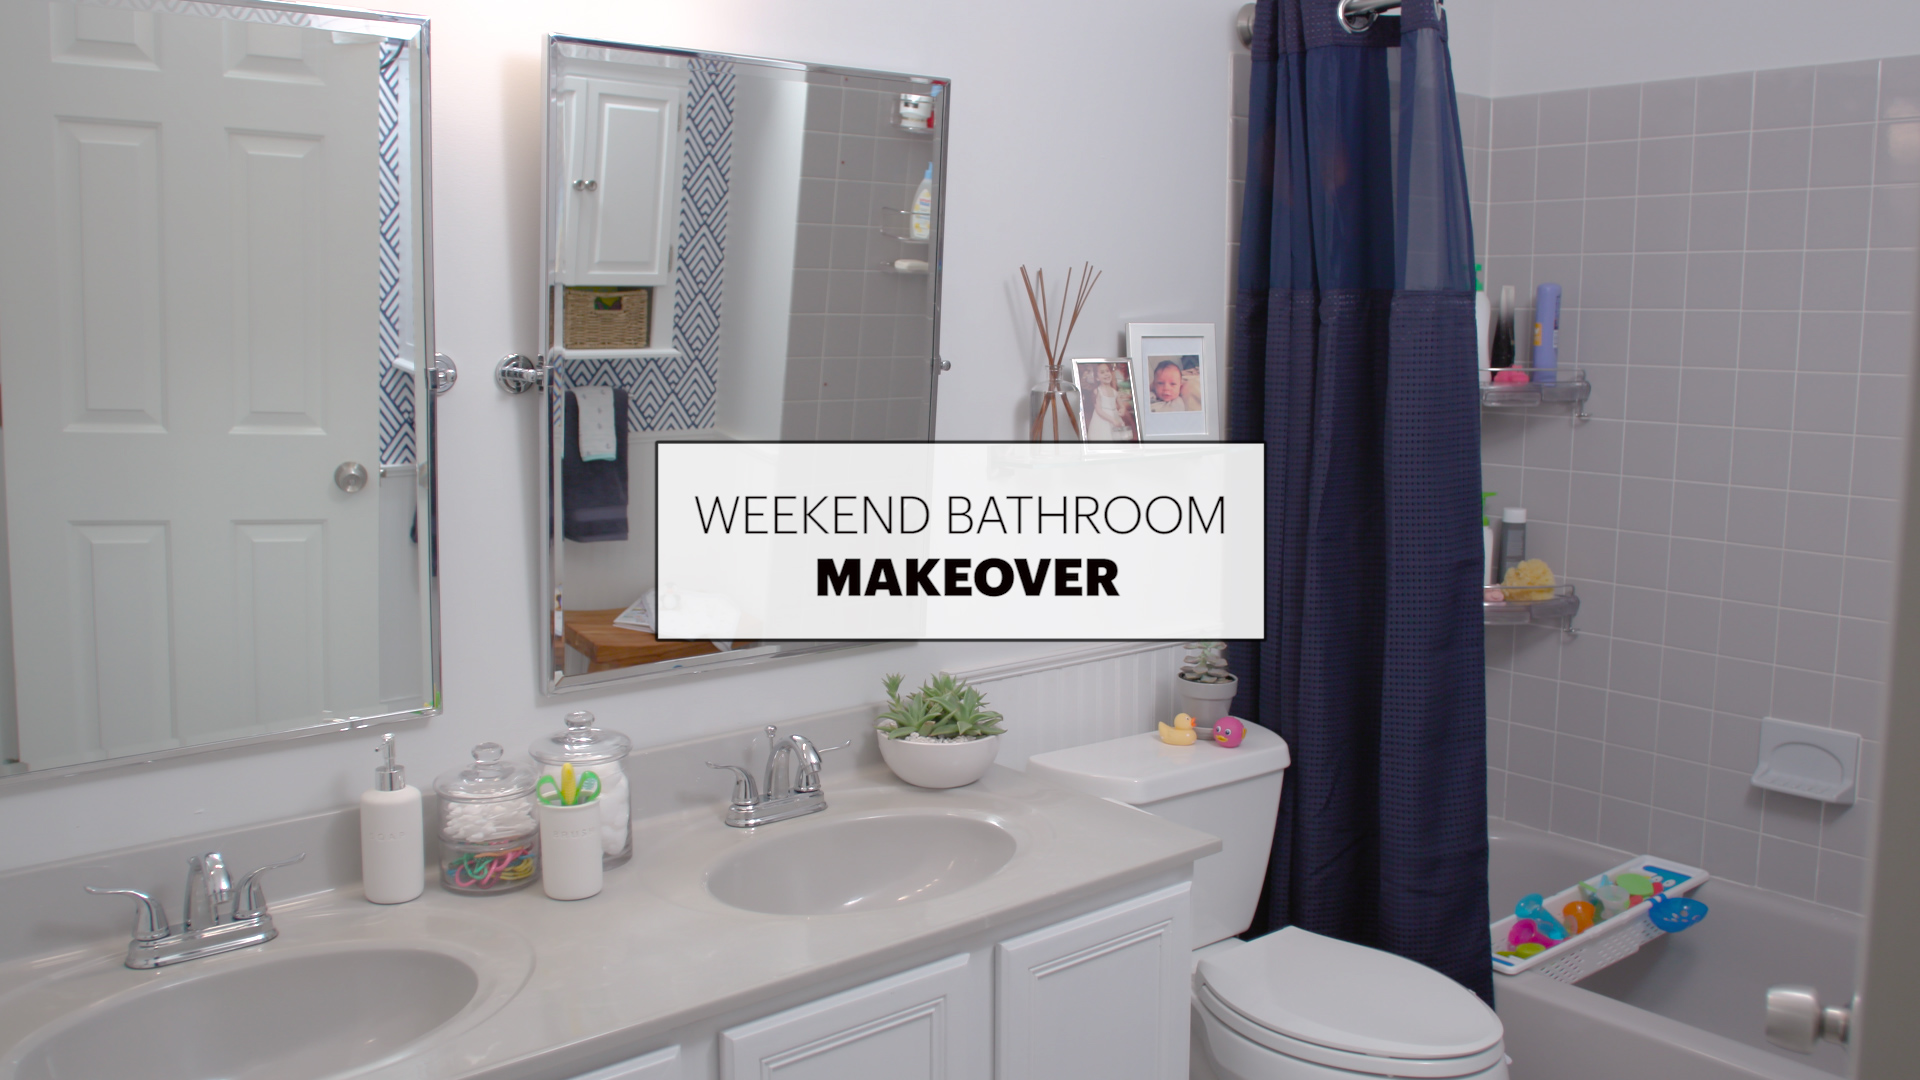 before after a beautiful bathroom makeover in just 1 weekend rh apartmenttherapy com